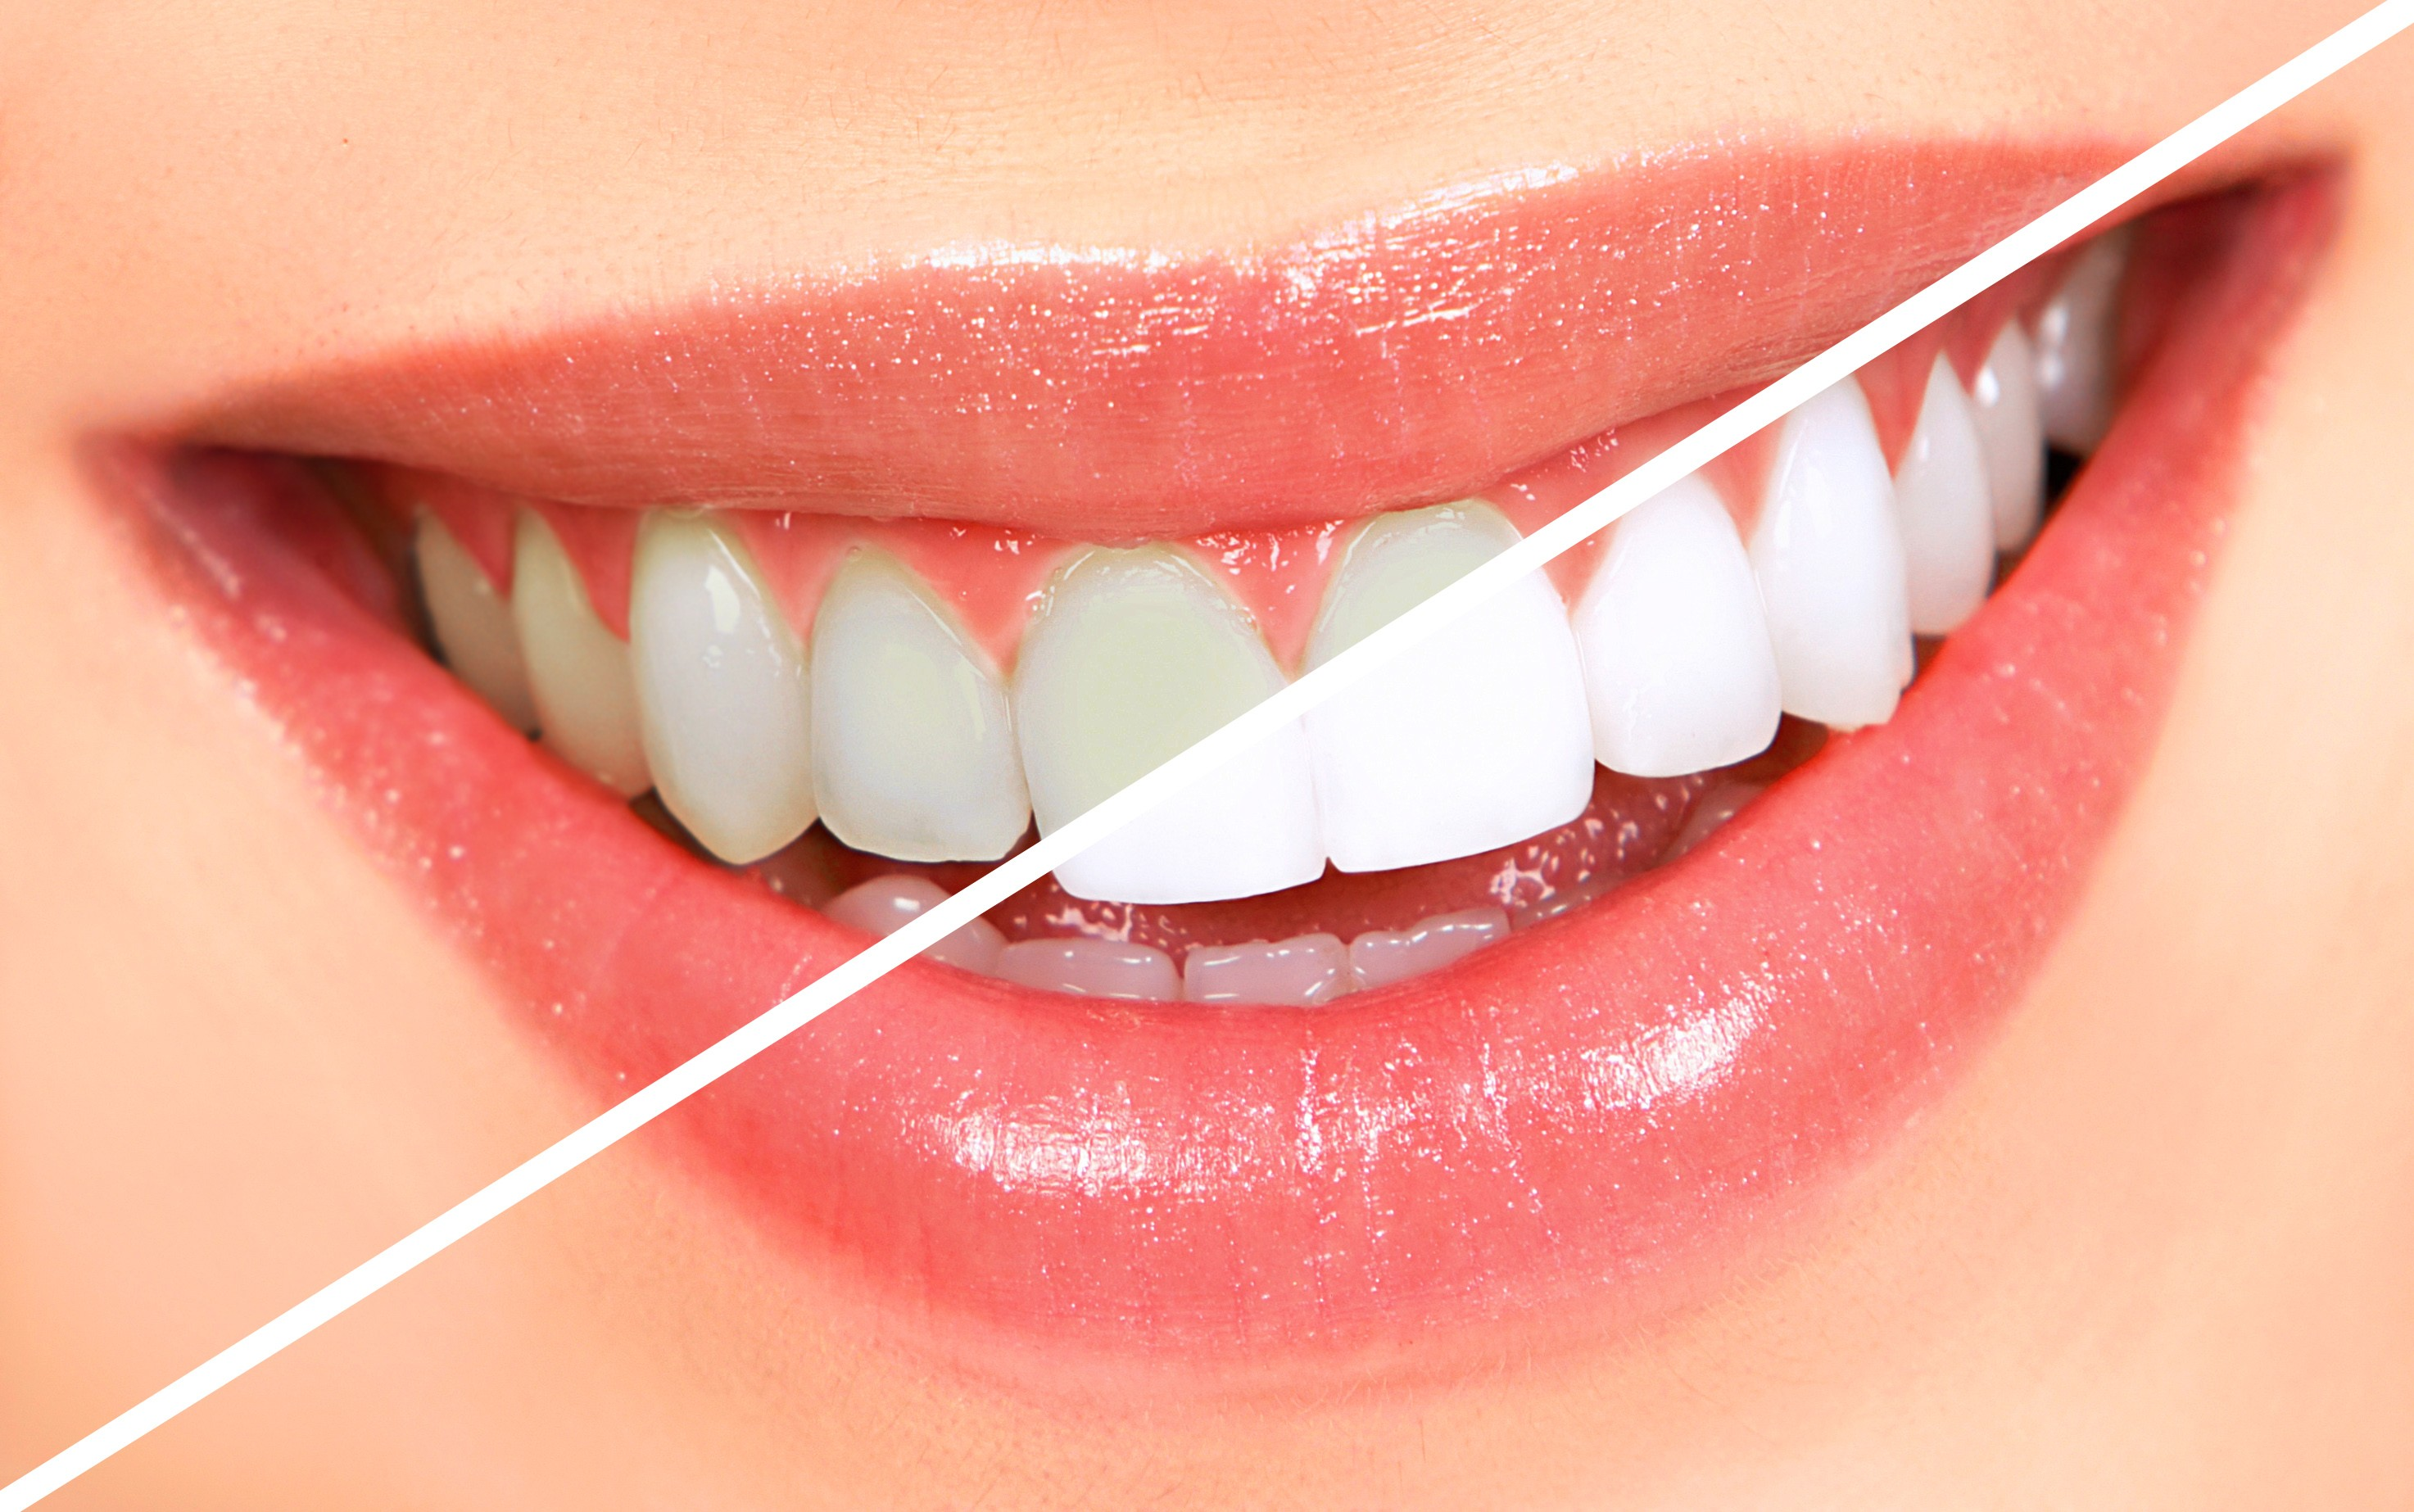 Whitened Teeth Will Only Sparkle for a Limited Time